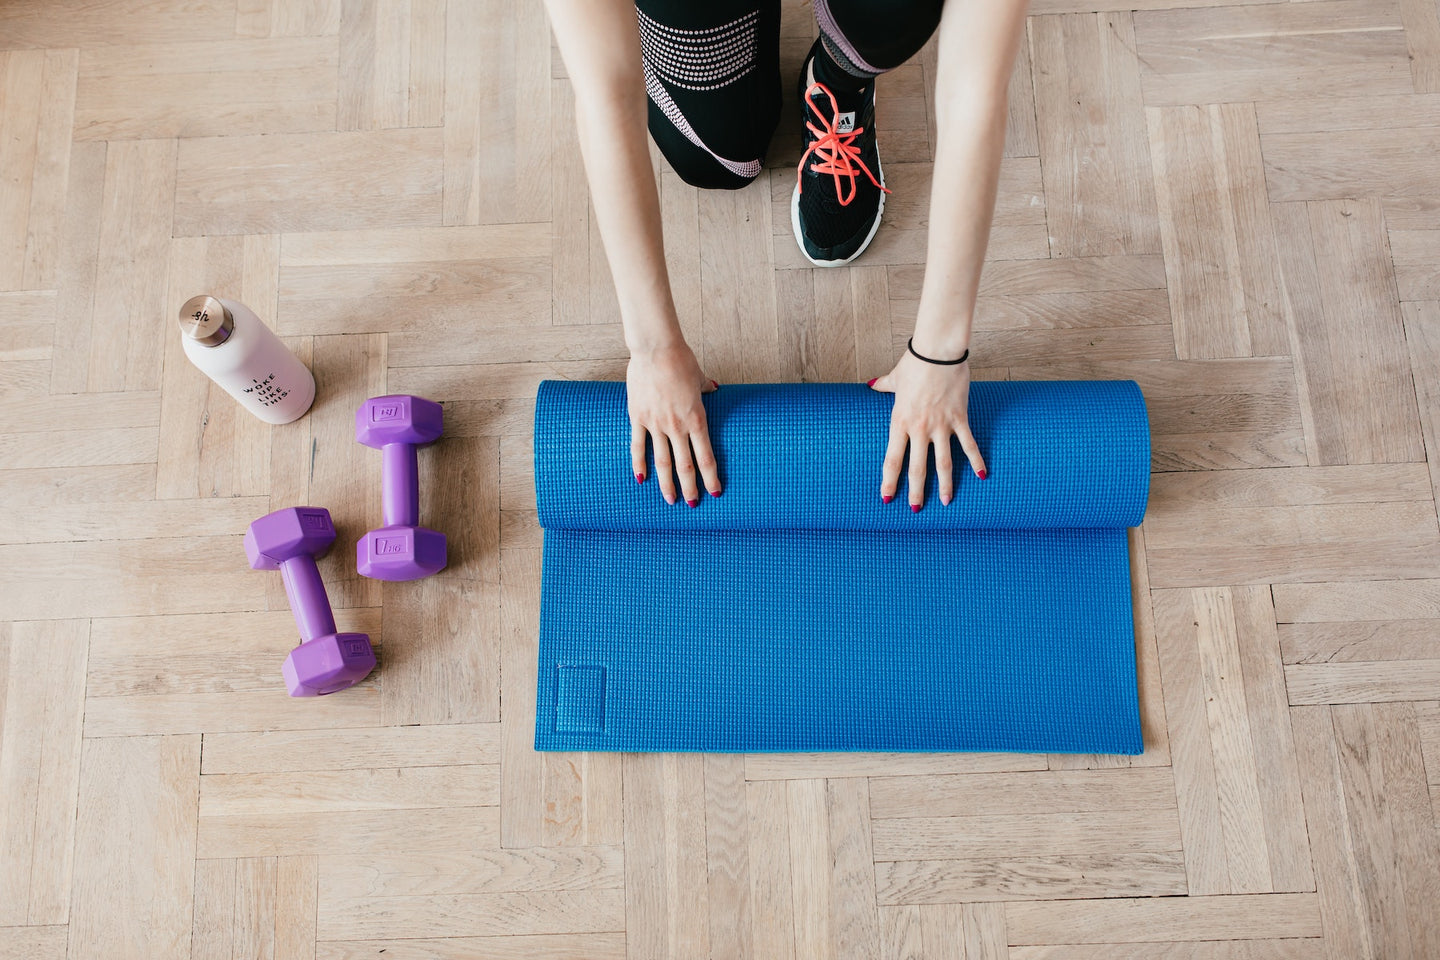 2021 Wellness: How to Workout at Home